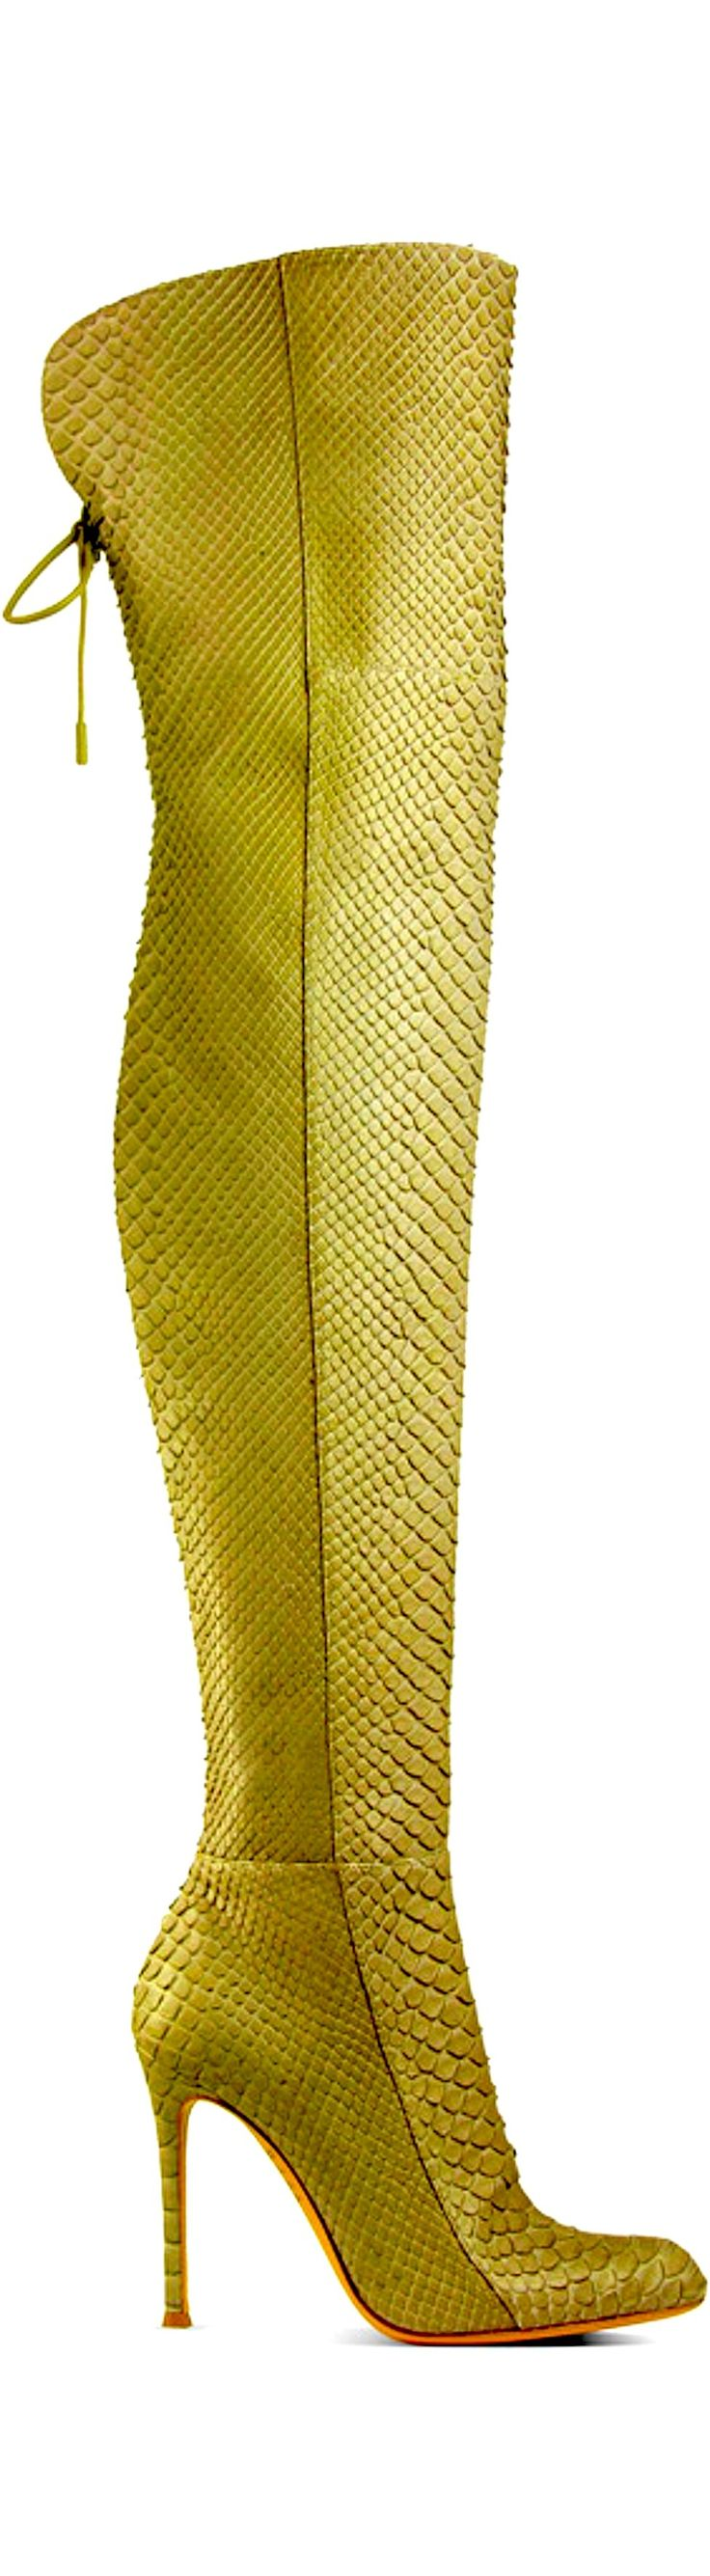 be colorful. reptile. thigh high boots.